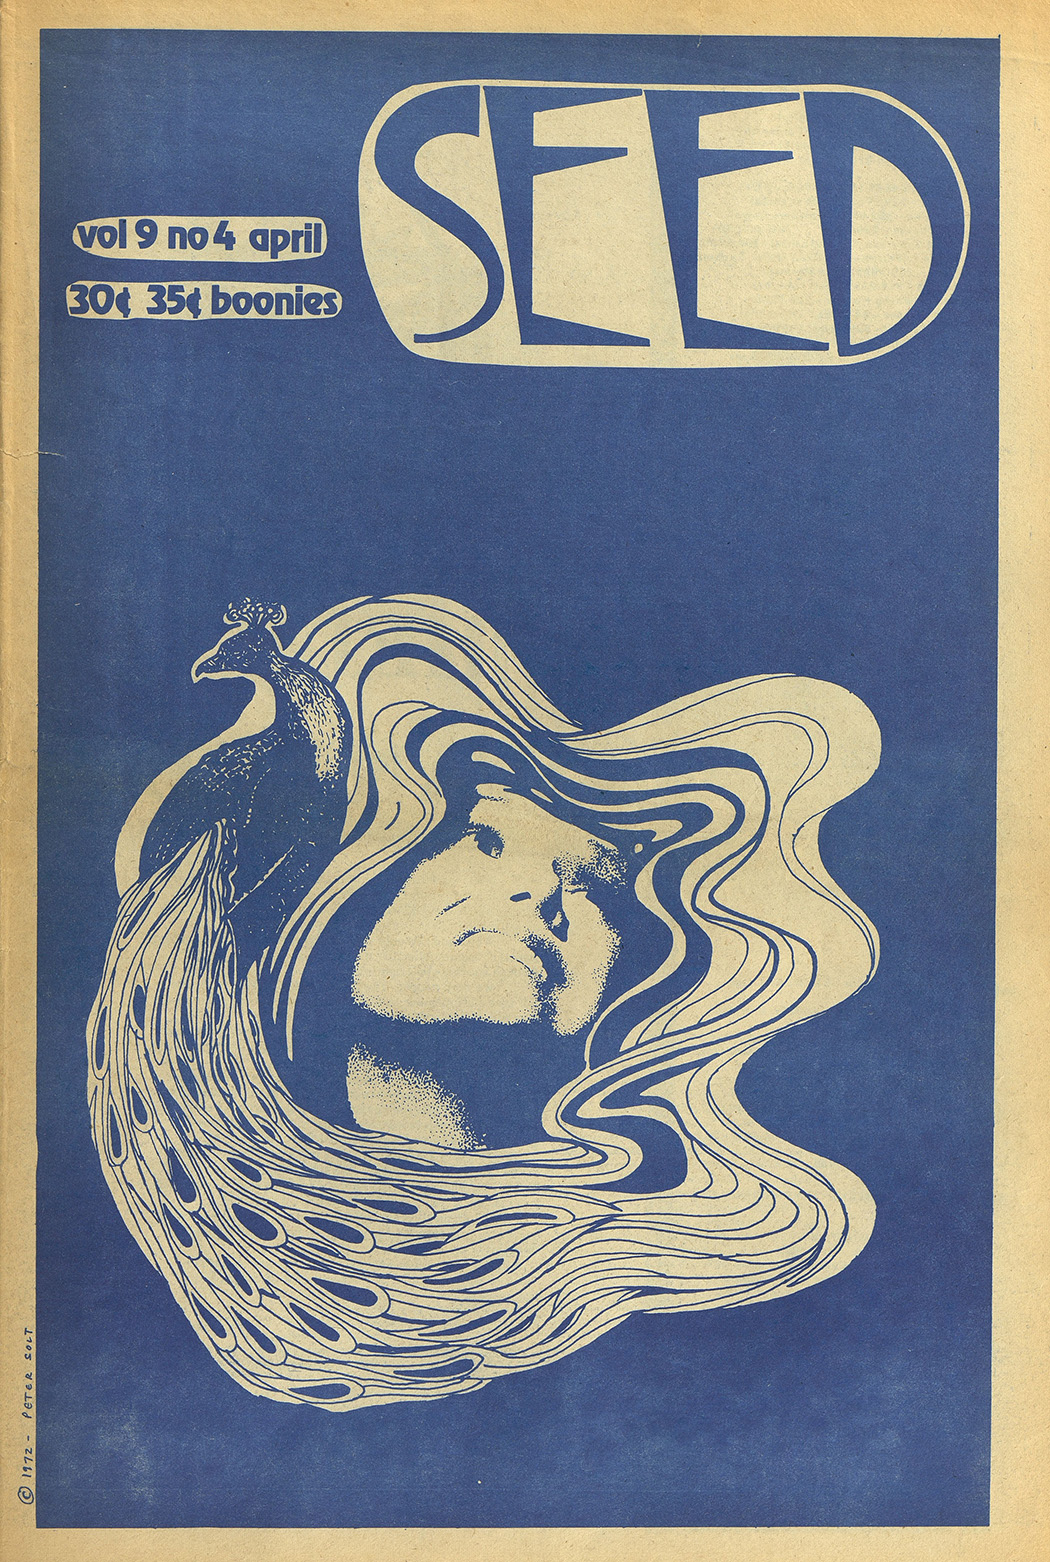 Cover of The Seed, April 1973